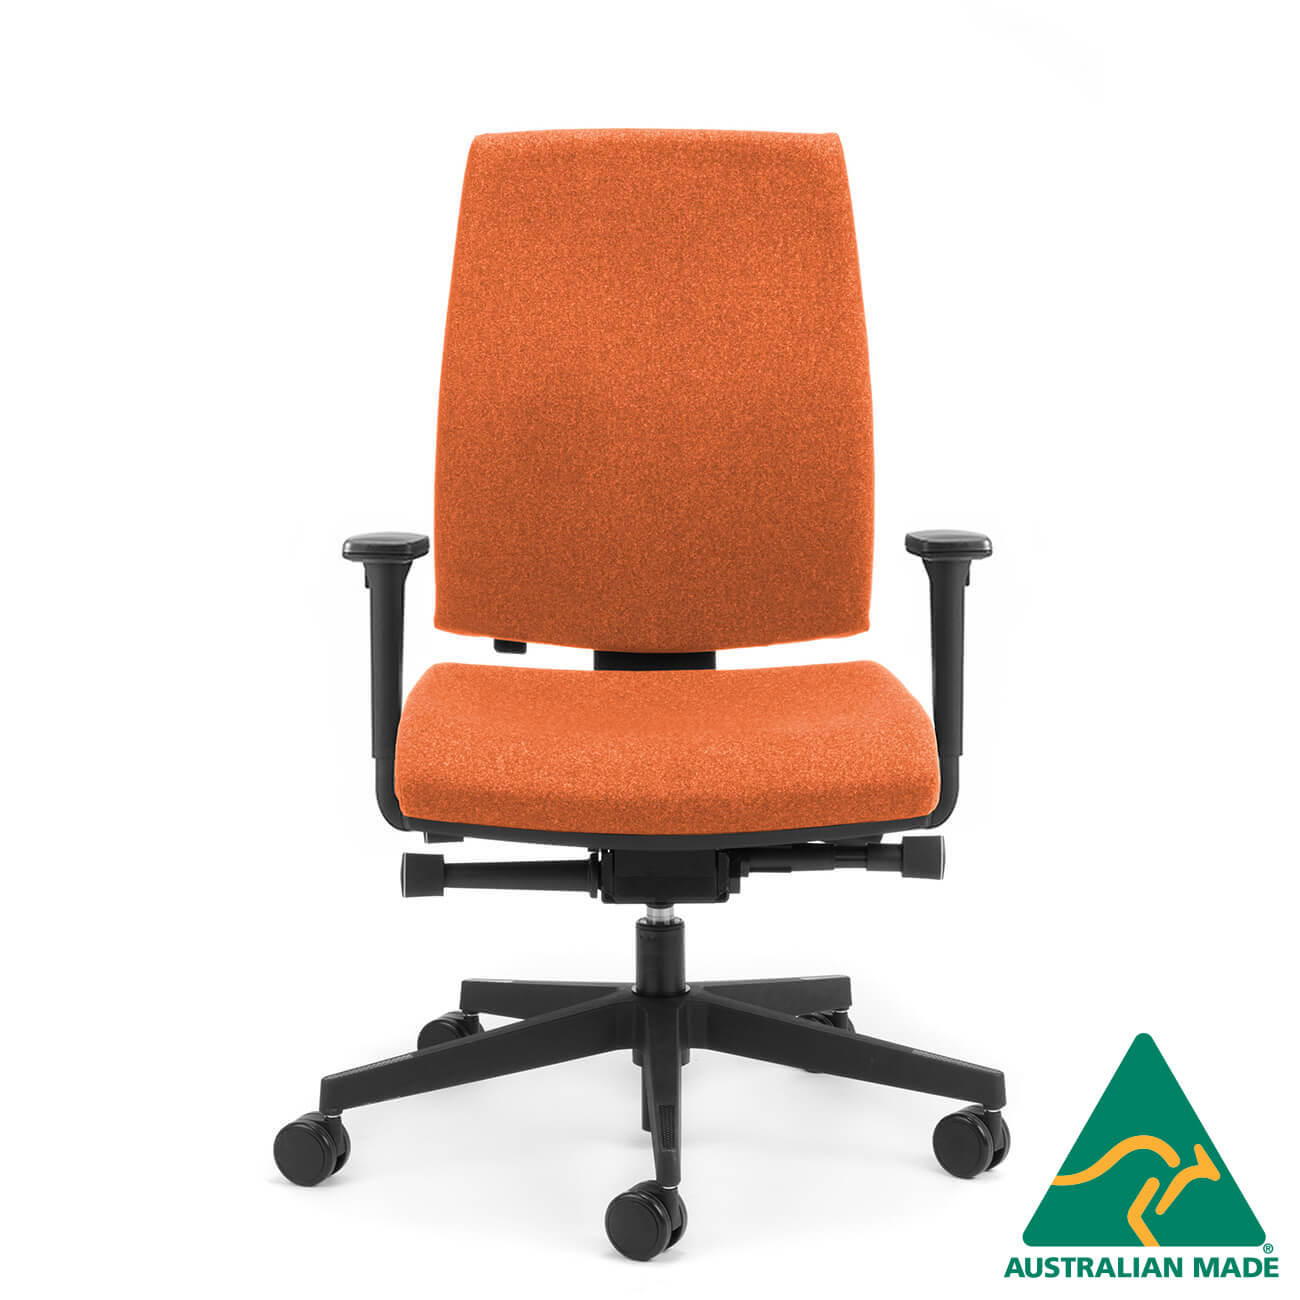 Kinetic high back executive chair with arms side angle